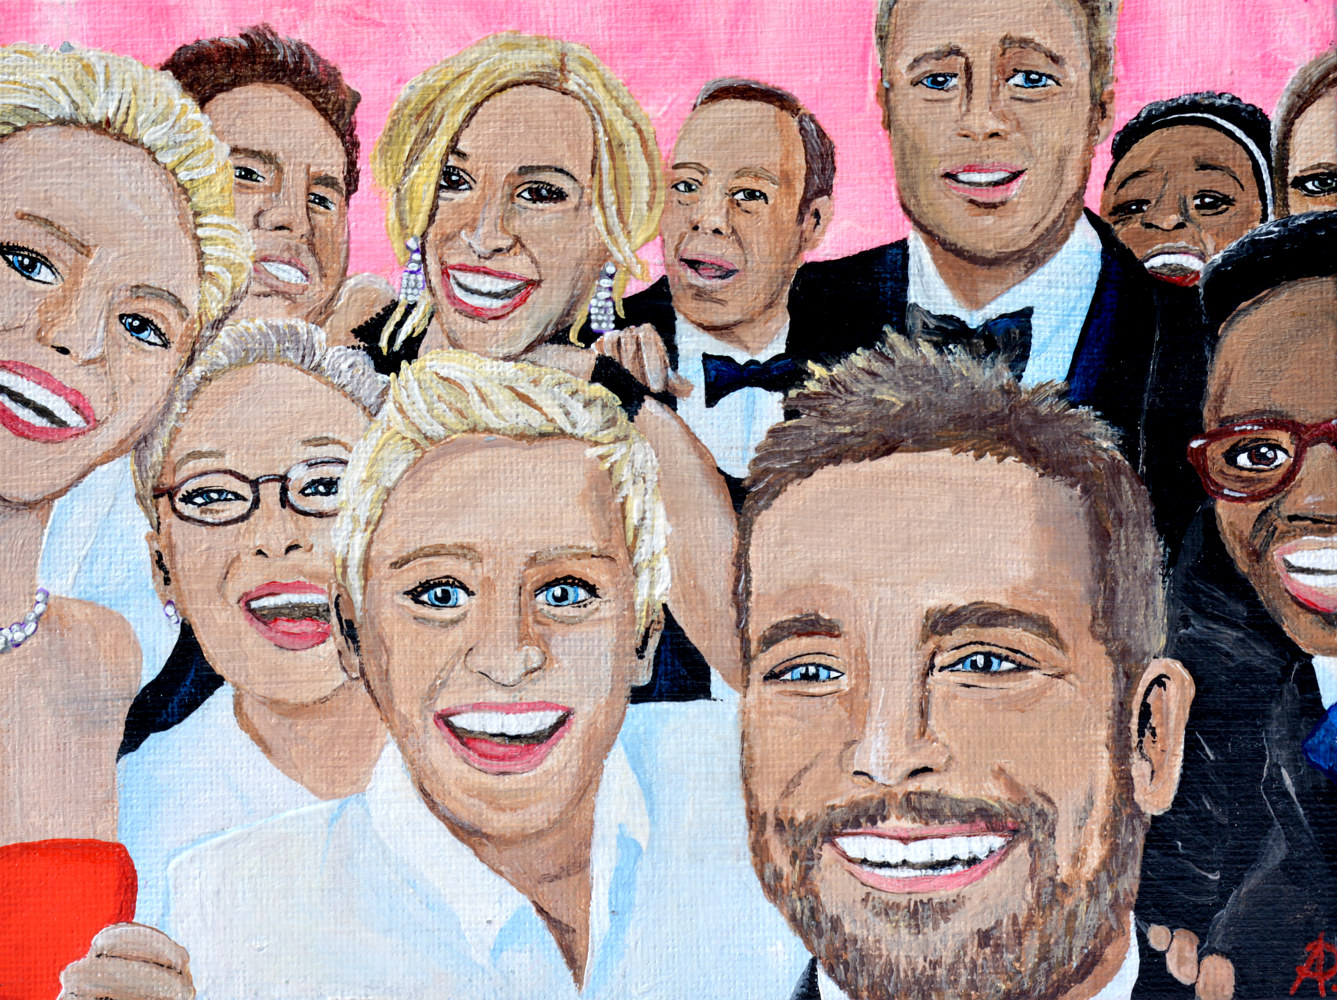 Acrylic painting Oscar Selfie - Sold by Amber N Petersen